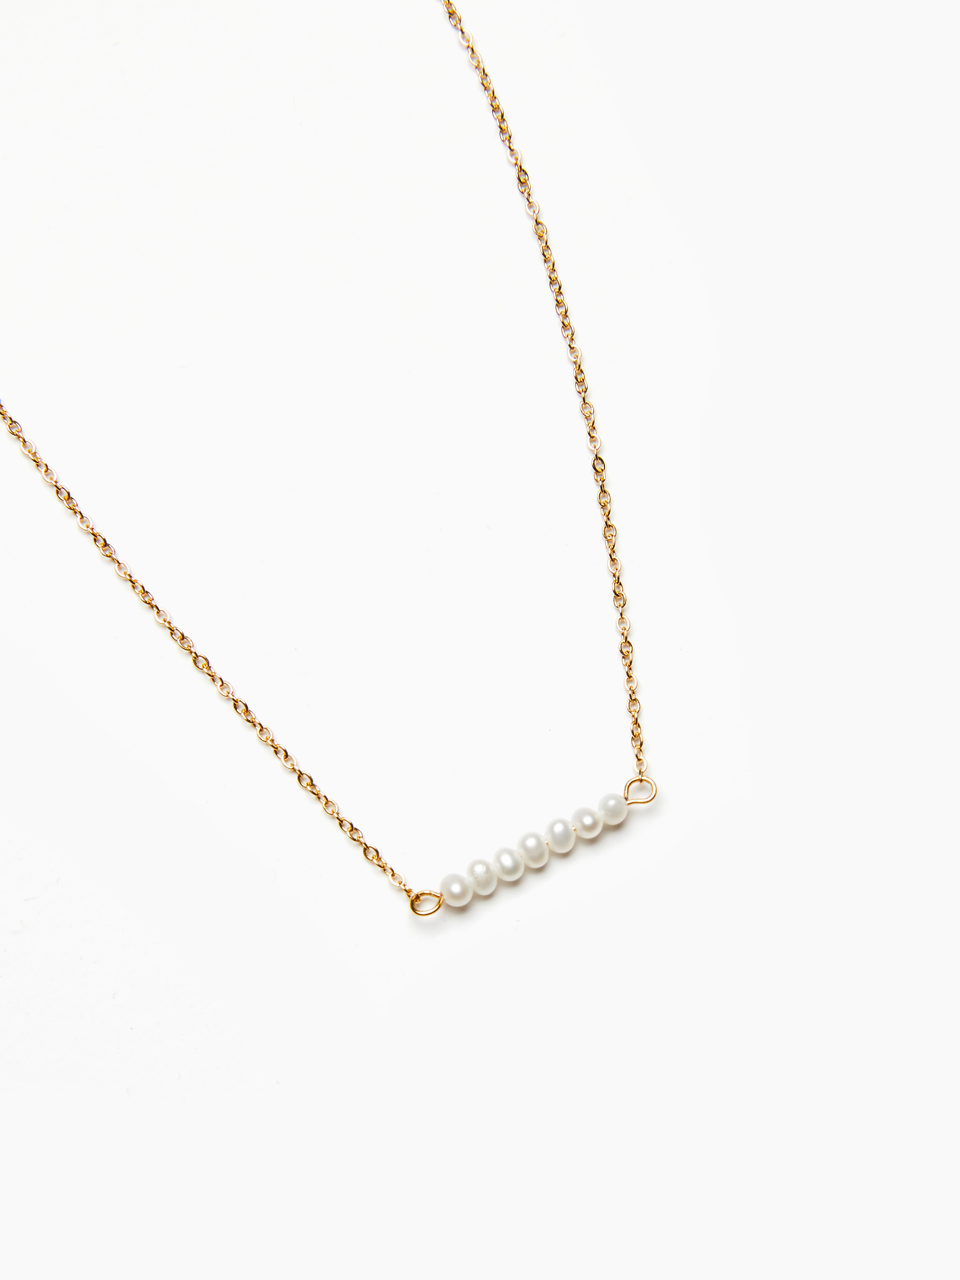 [GABIE KOOK] GOLDEN CHAIN PEARL NECKLACES